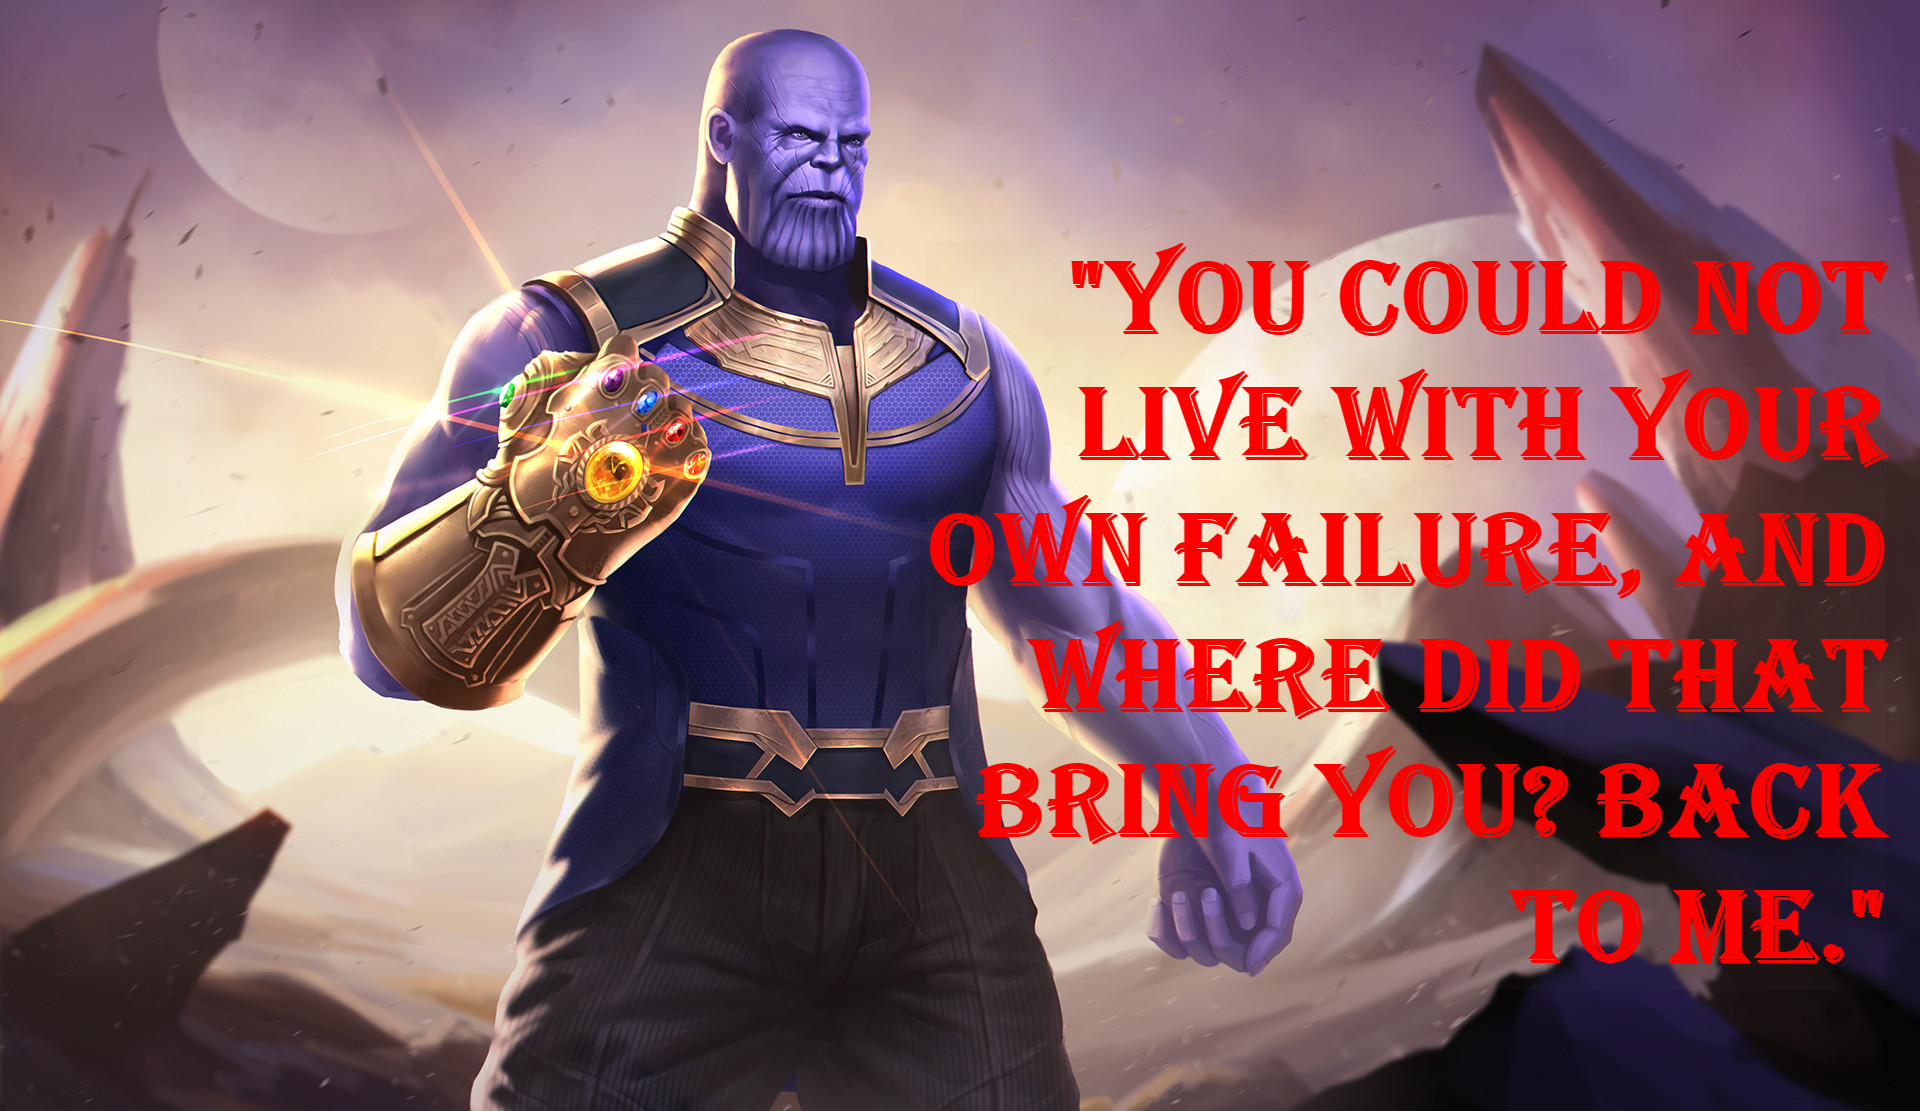 Thanos comic-book quotes